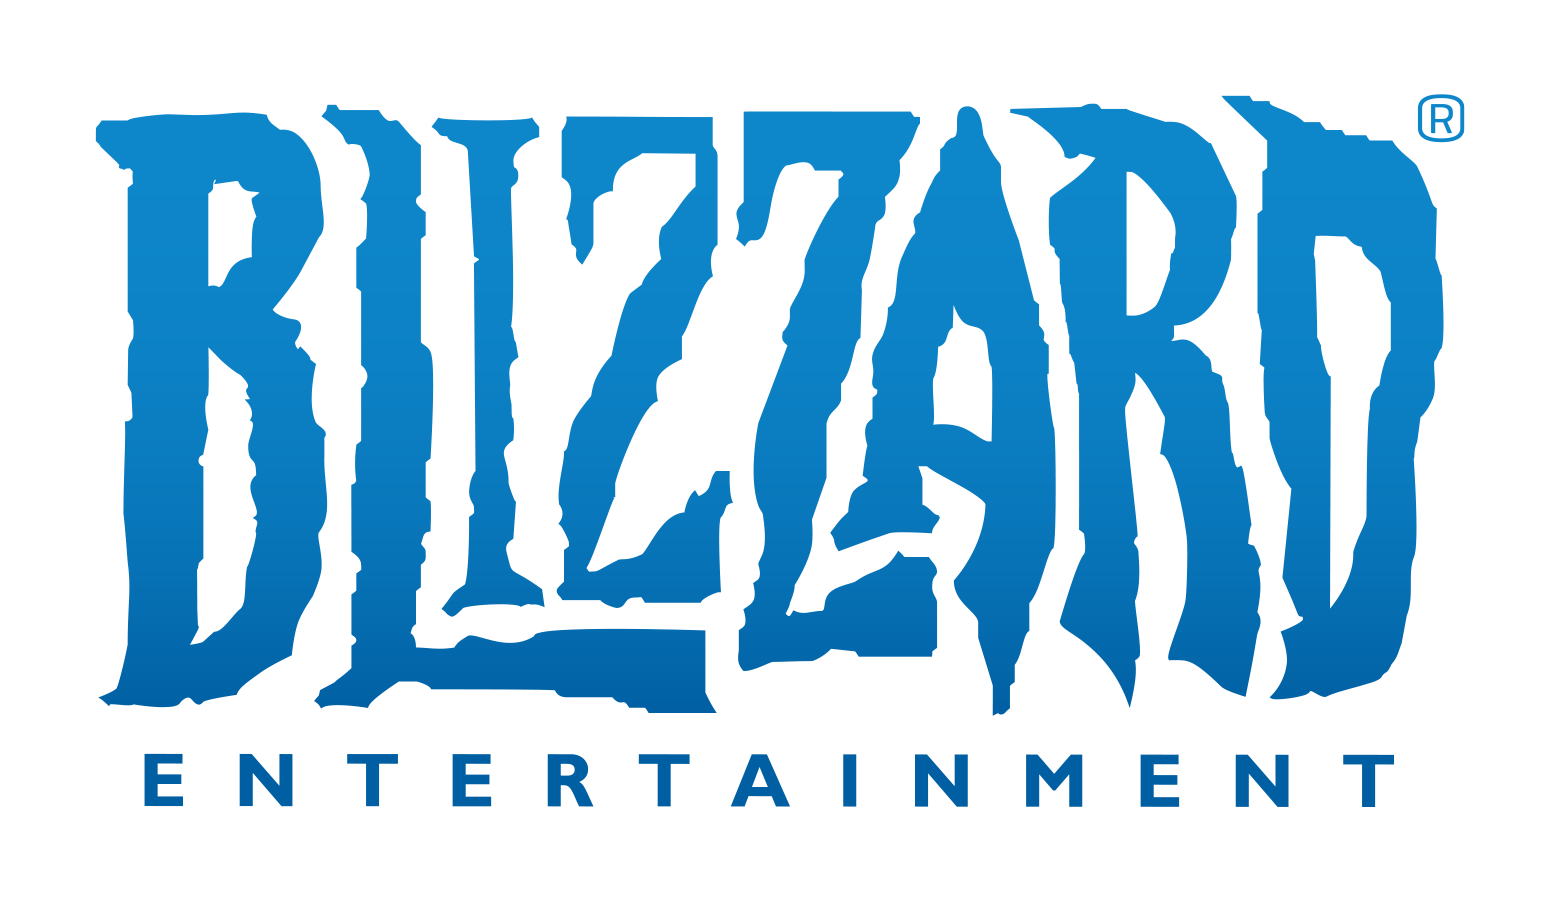 Image Blizzard Entertainment Logo 2015x Png Logopedia Fandom